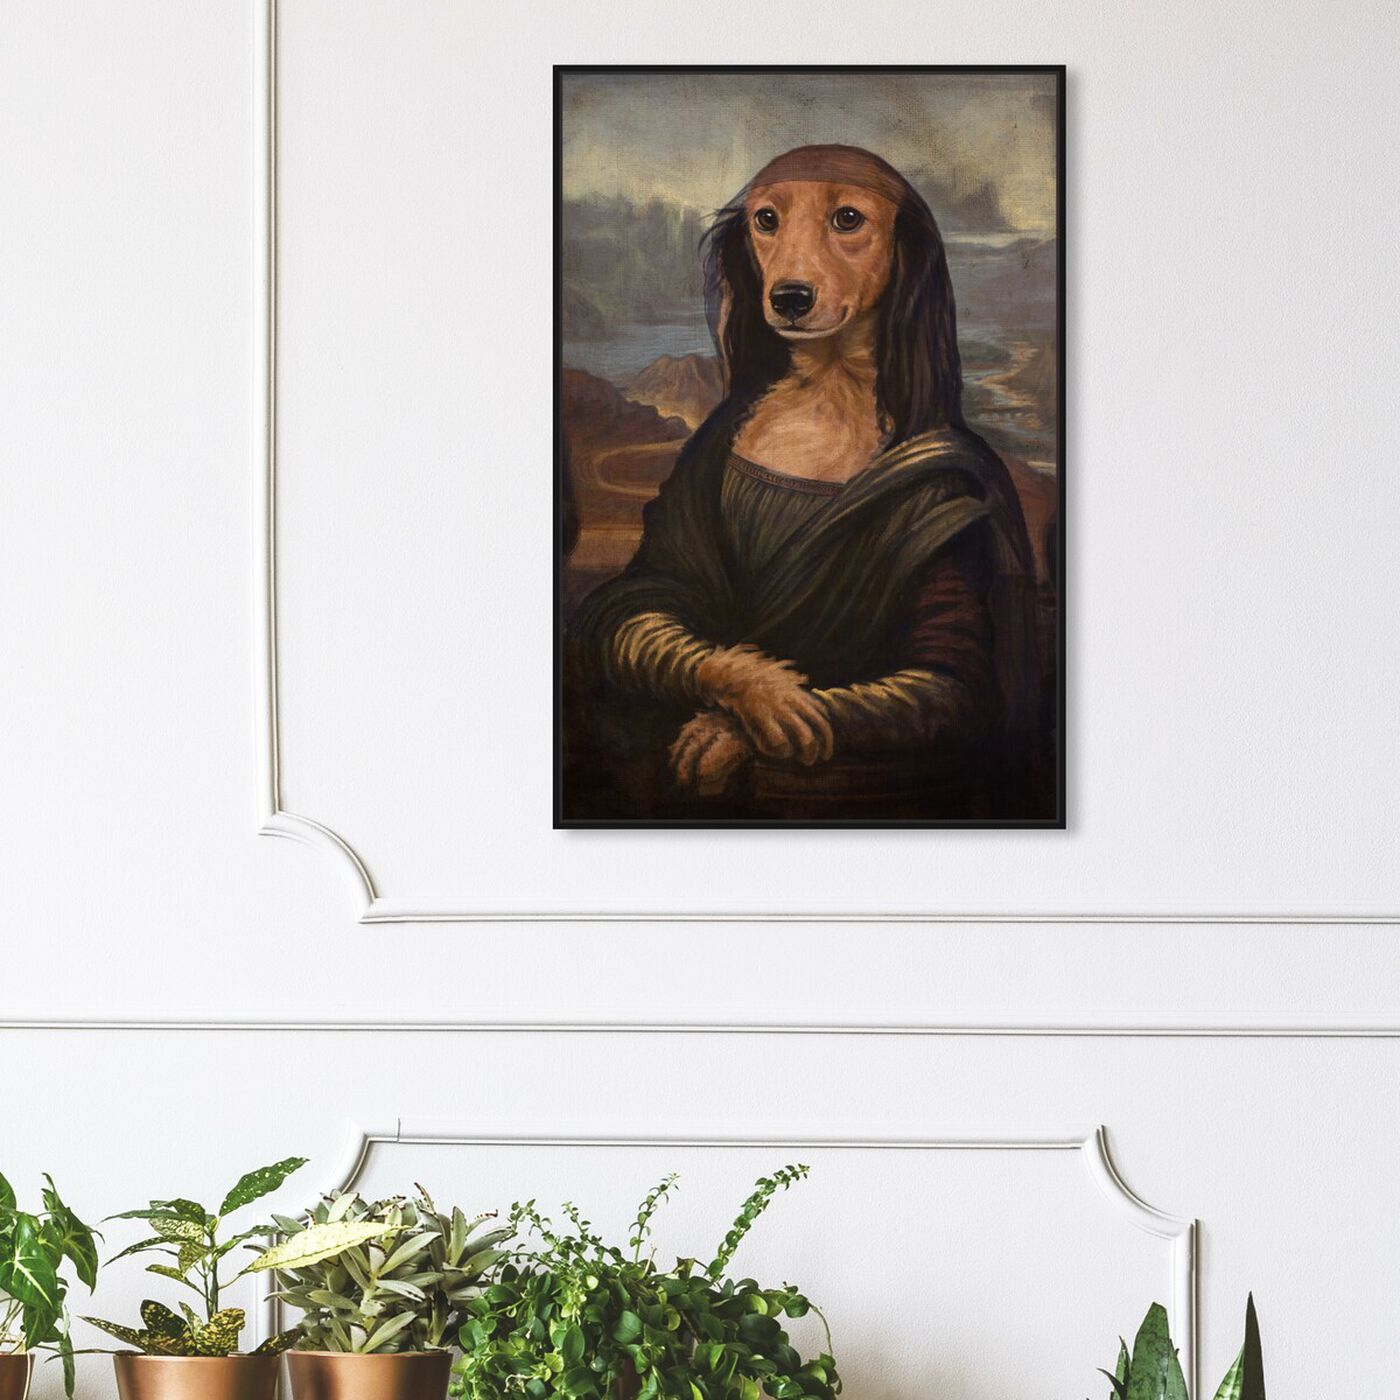 Hanging view of Mutt-a-Lisa By Carson Kressley featuring animals and dogs and puppies art.